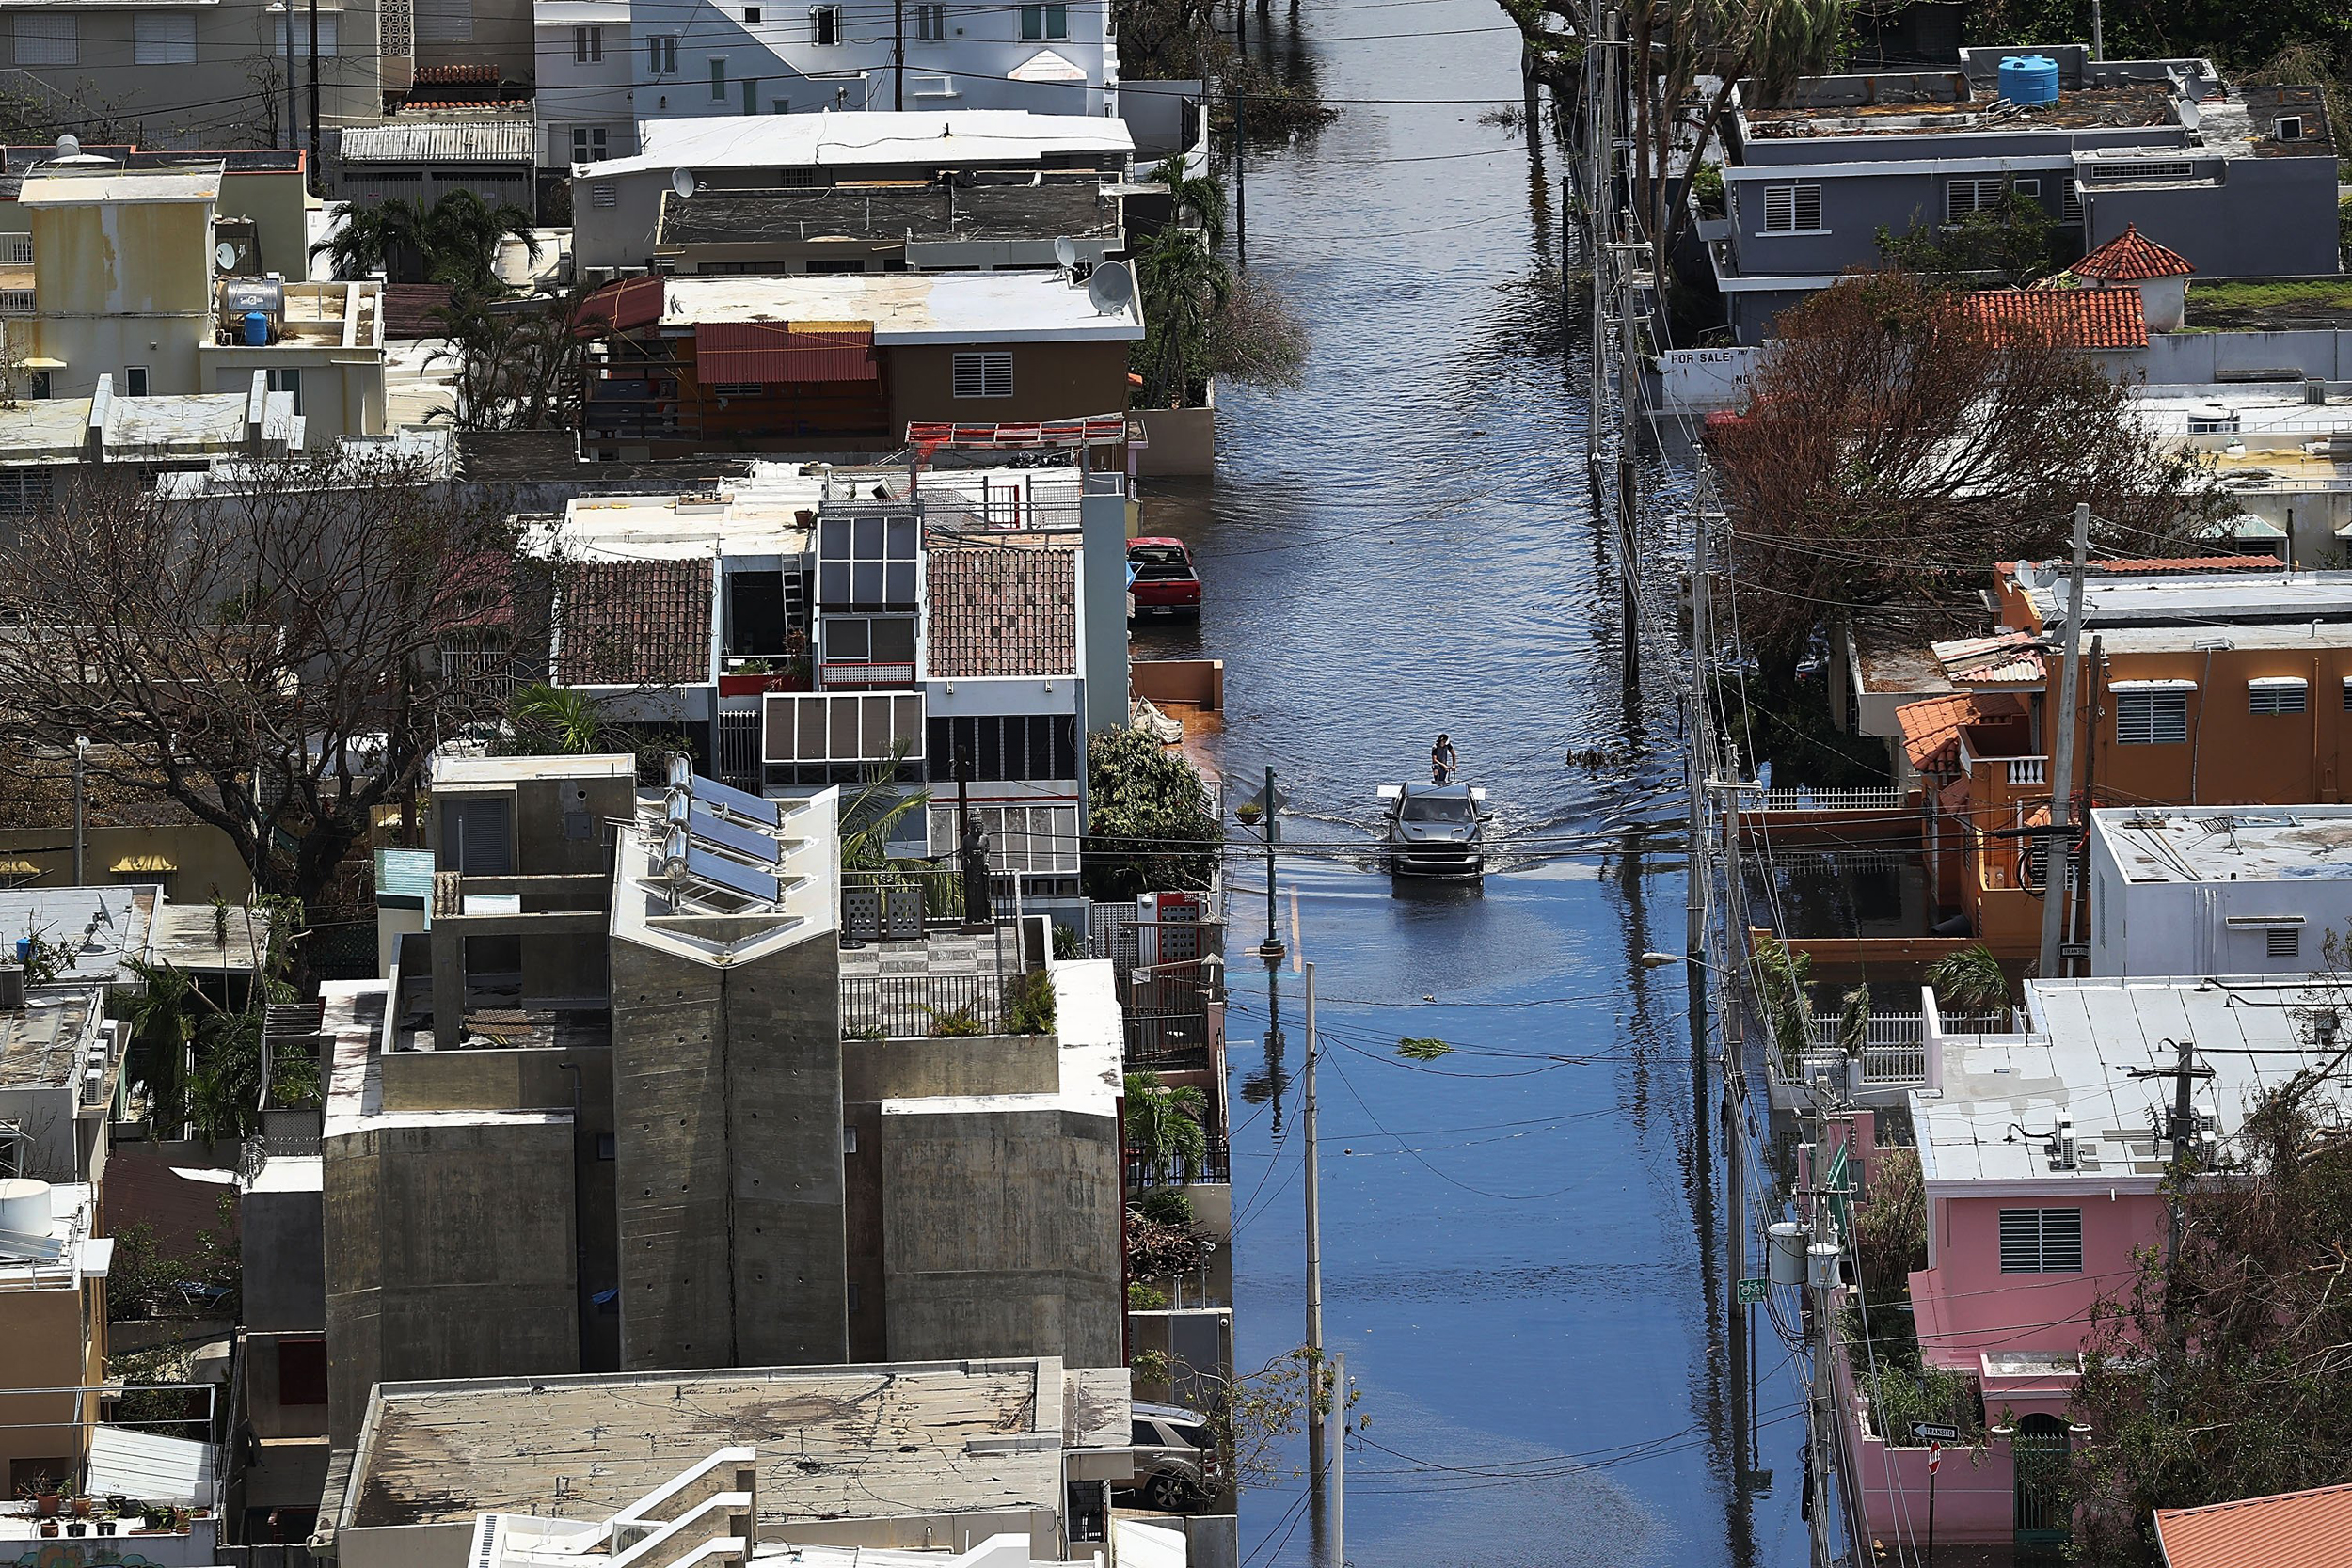 Hot, Tired and Scared: Puerto Ricans Plead for More Help